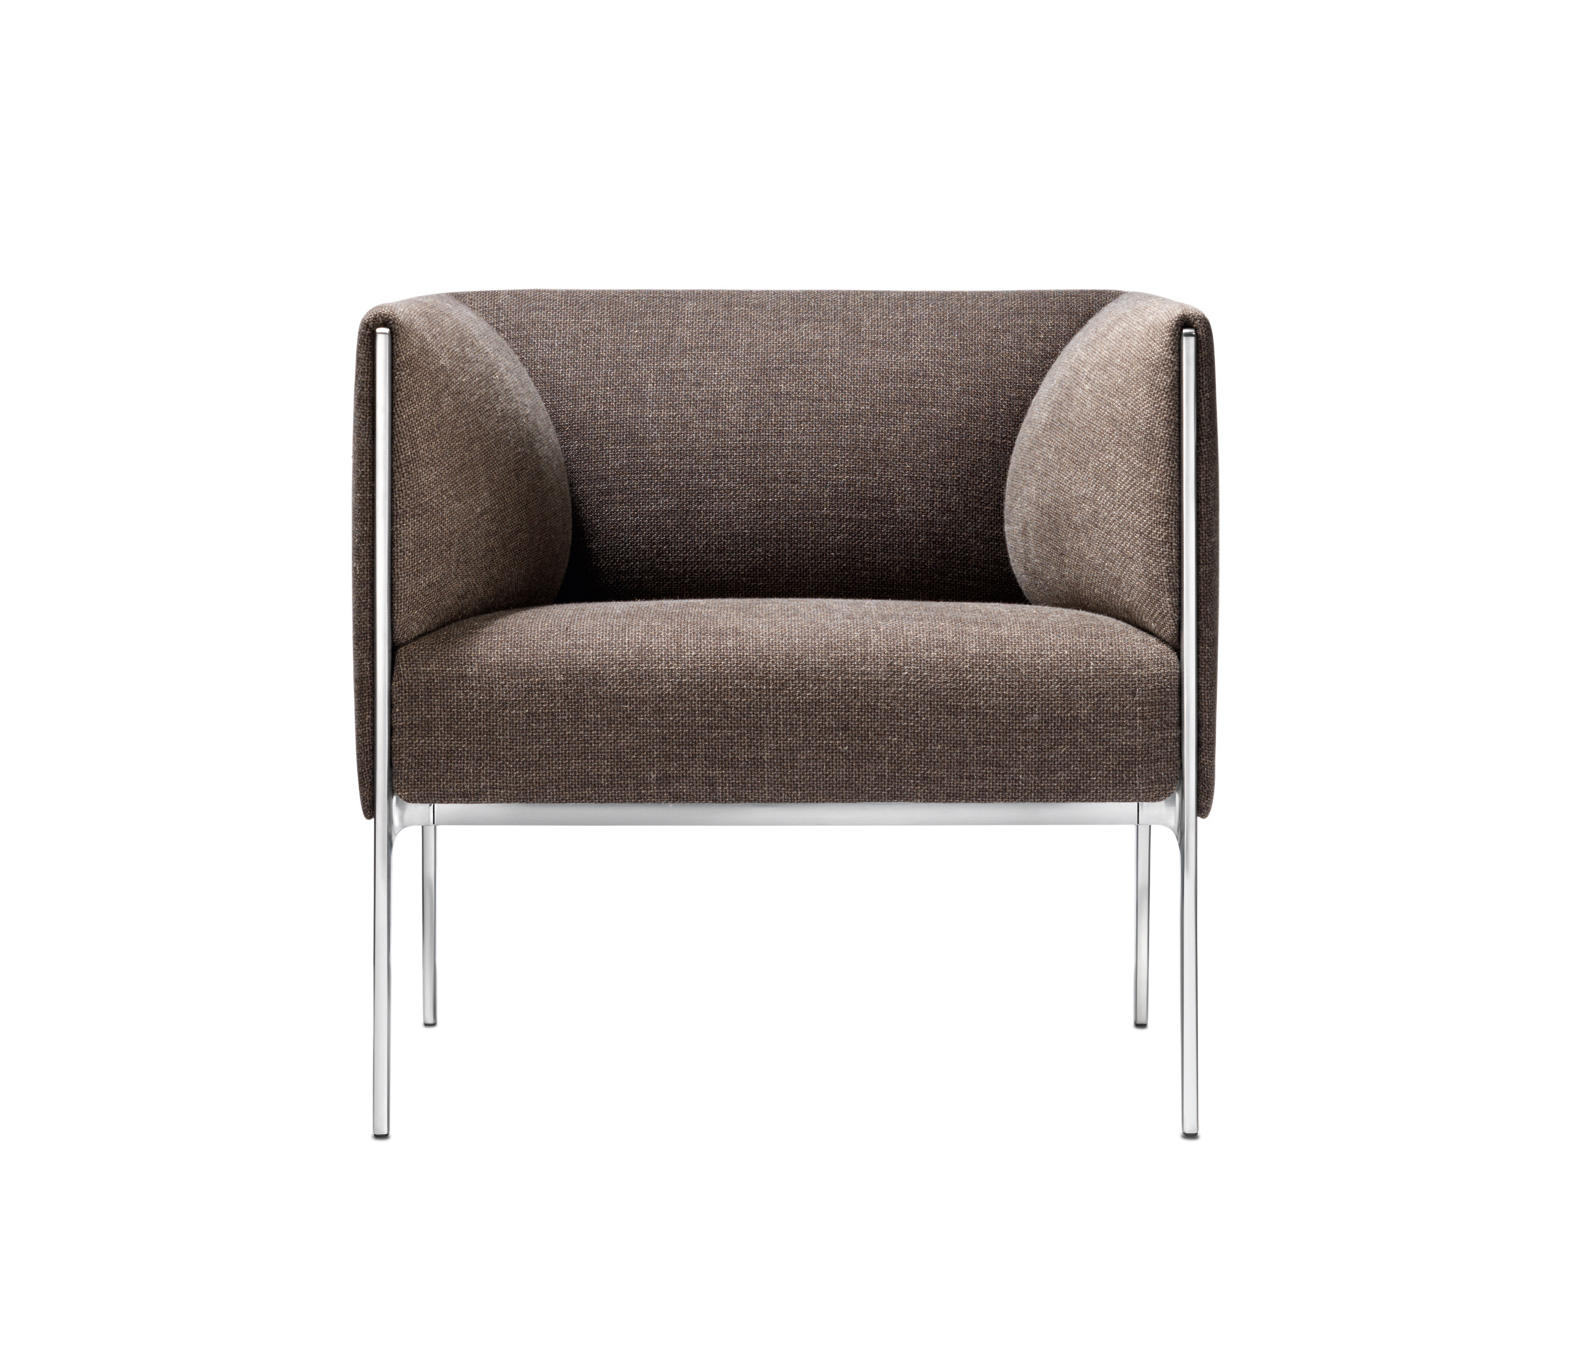 Sofa City Conforama Asienta Armchairs From Wilkhahn Architonic